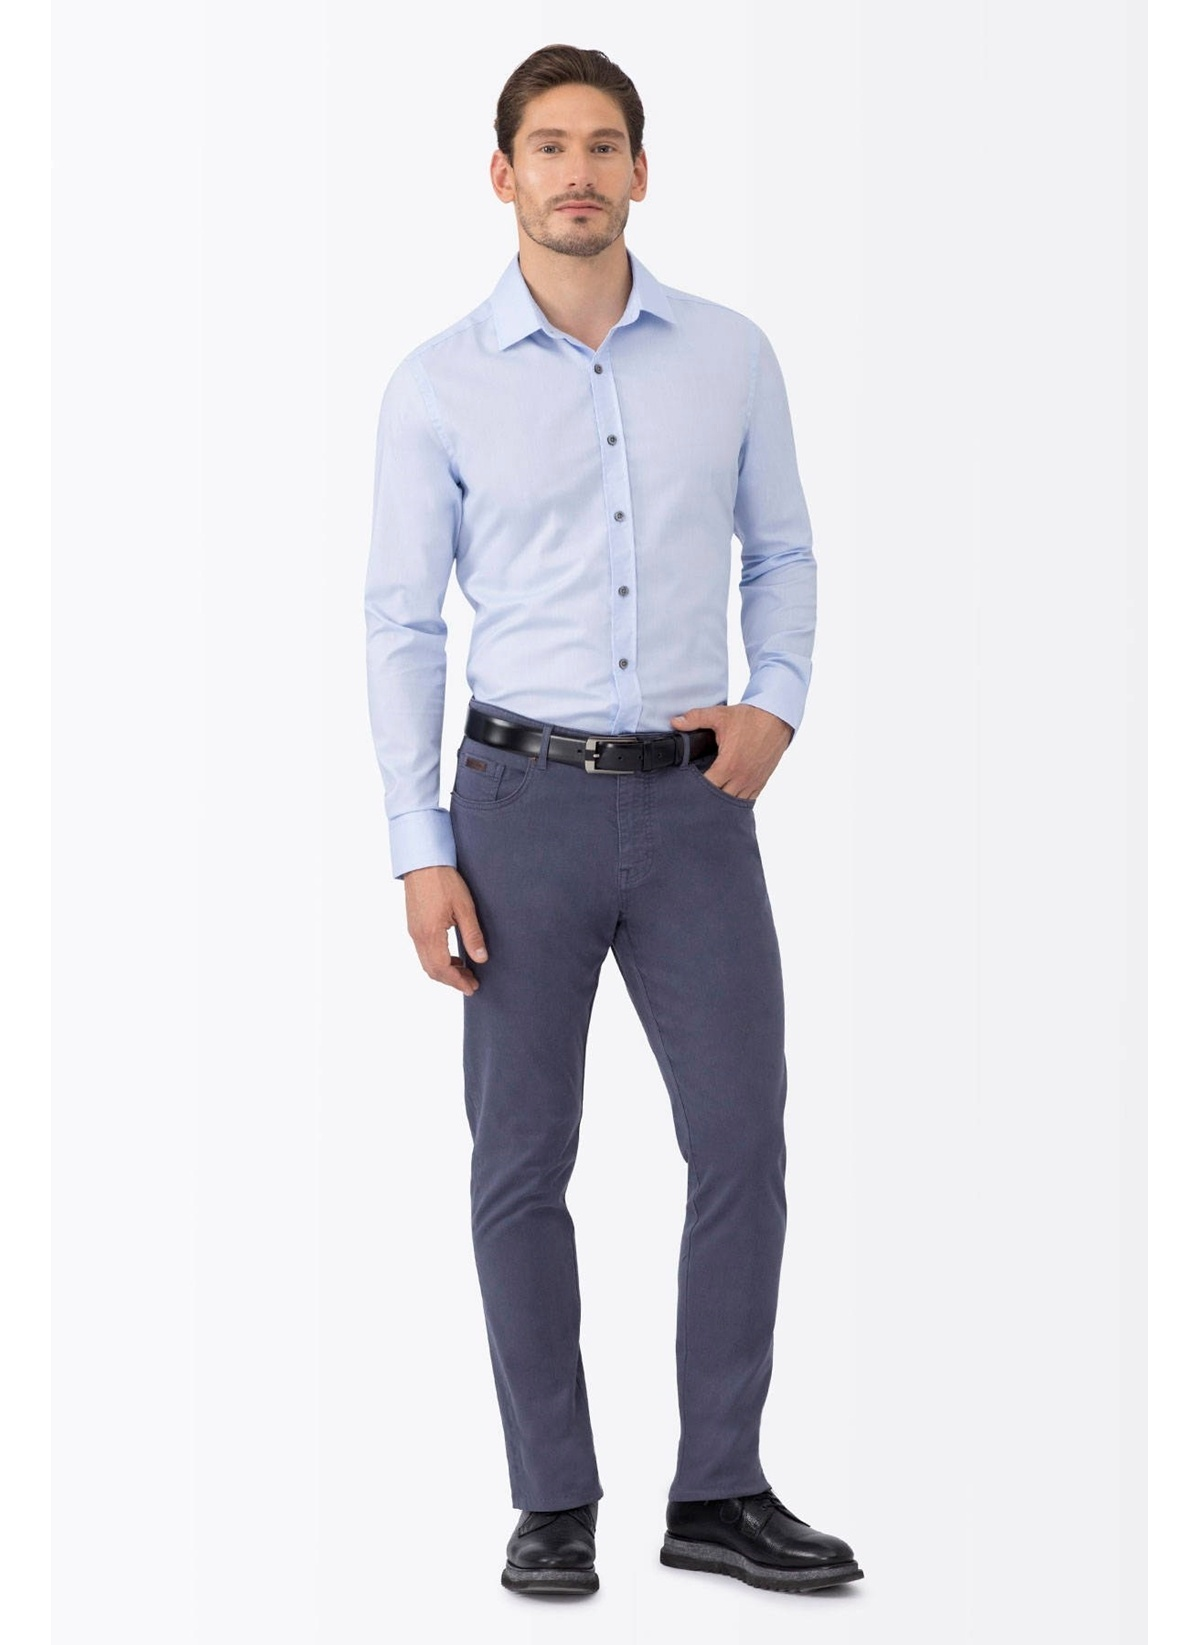 Hemington Slim Fit Kanvas Spor Pantolon 174429011 Pantolon – 149.5 TL